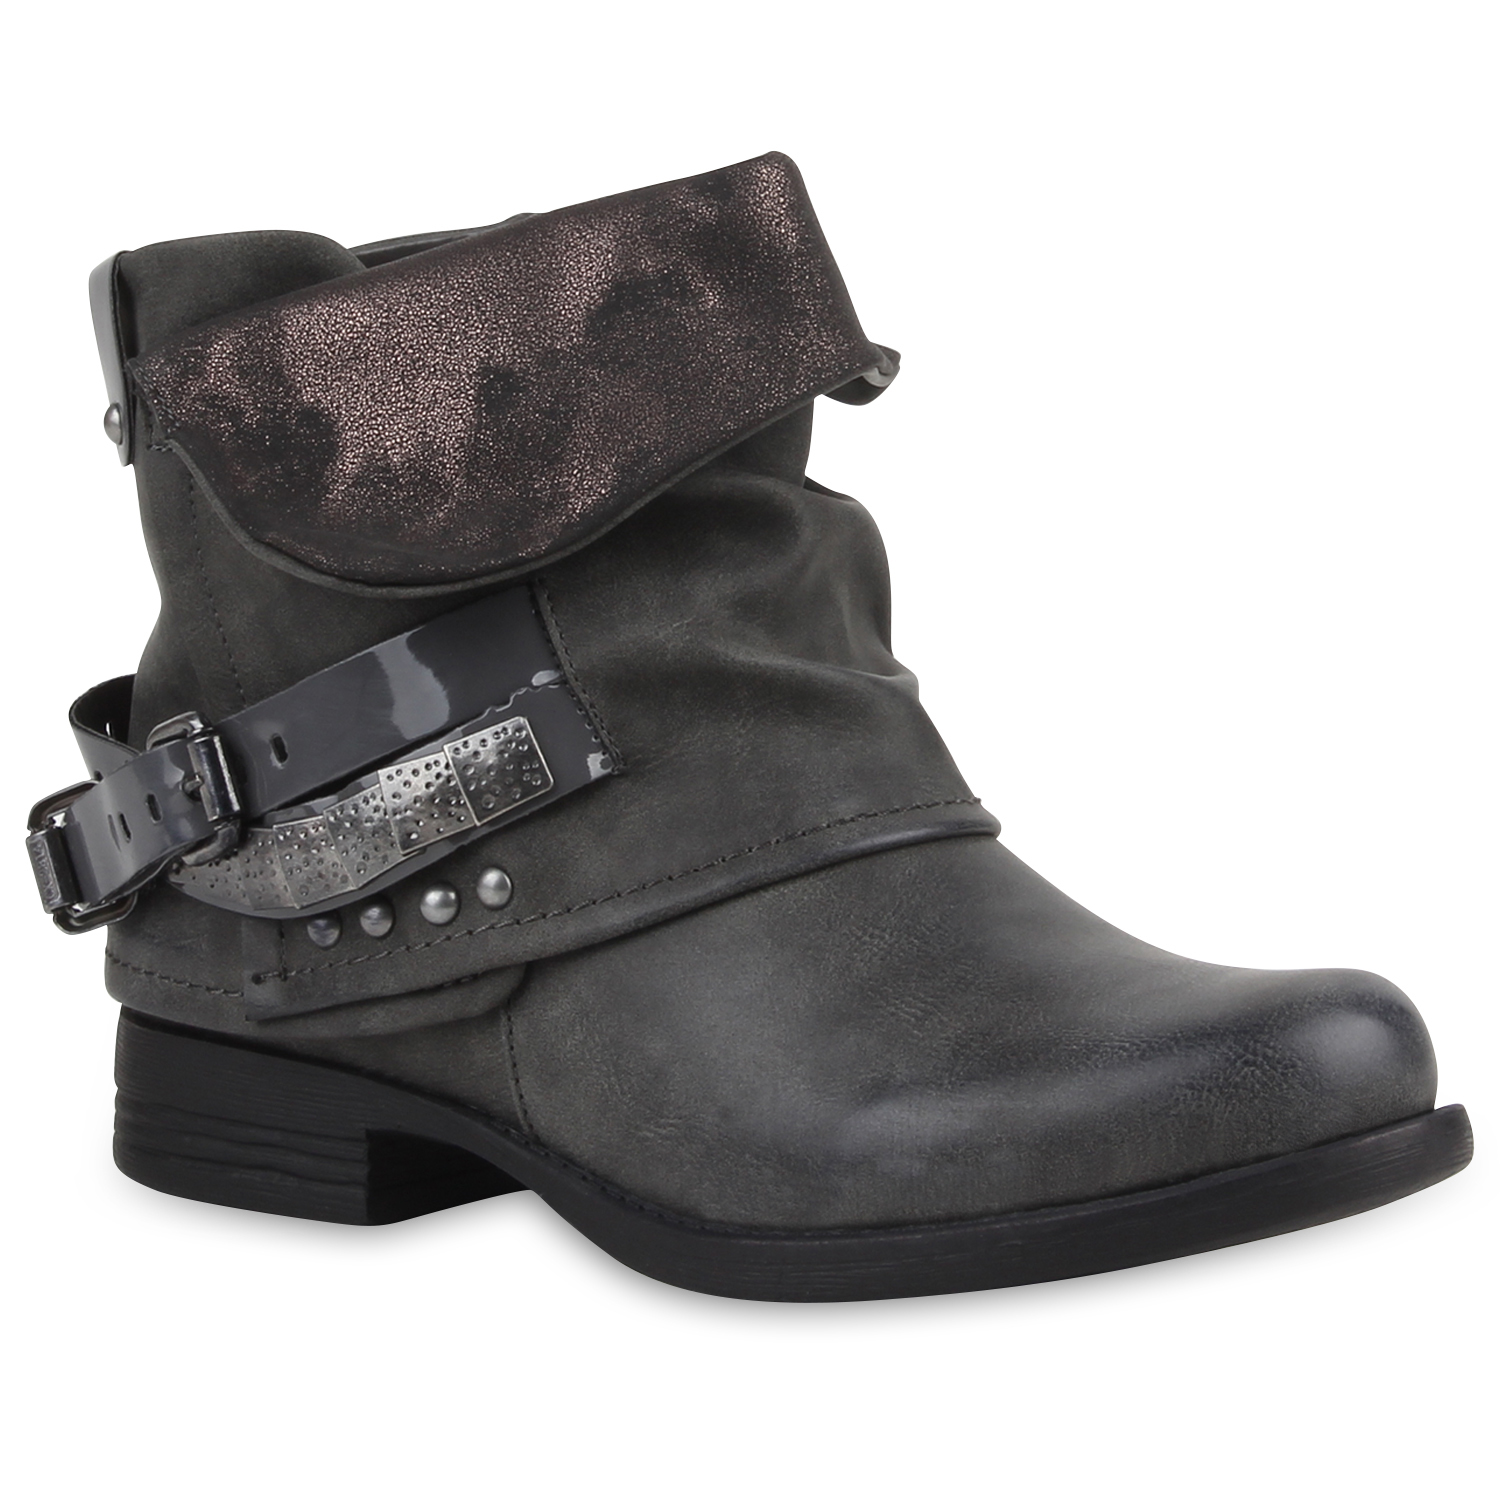 stylische damen stiefeletten stiefel biker boots metallic. Black Bedroom Furniture Sets. Home Design Ideas